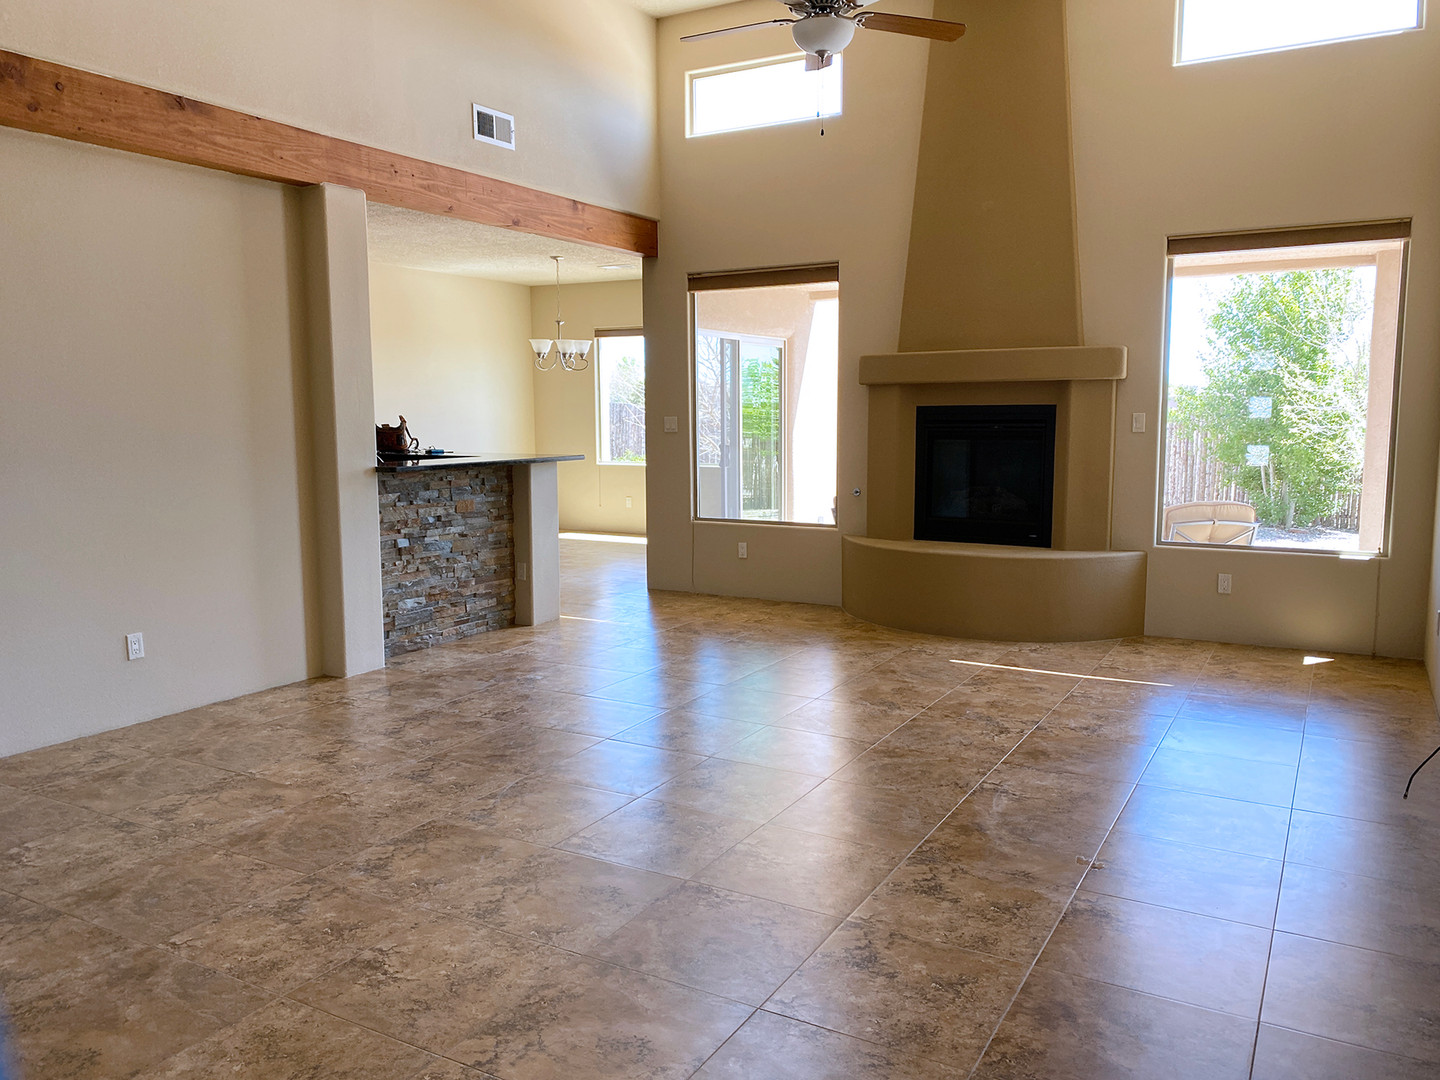 Canto Del Pajaro | Vaulted Living Room Feels Cavernous Before Staging